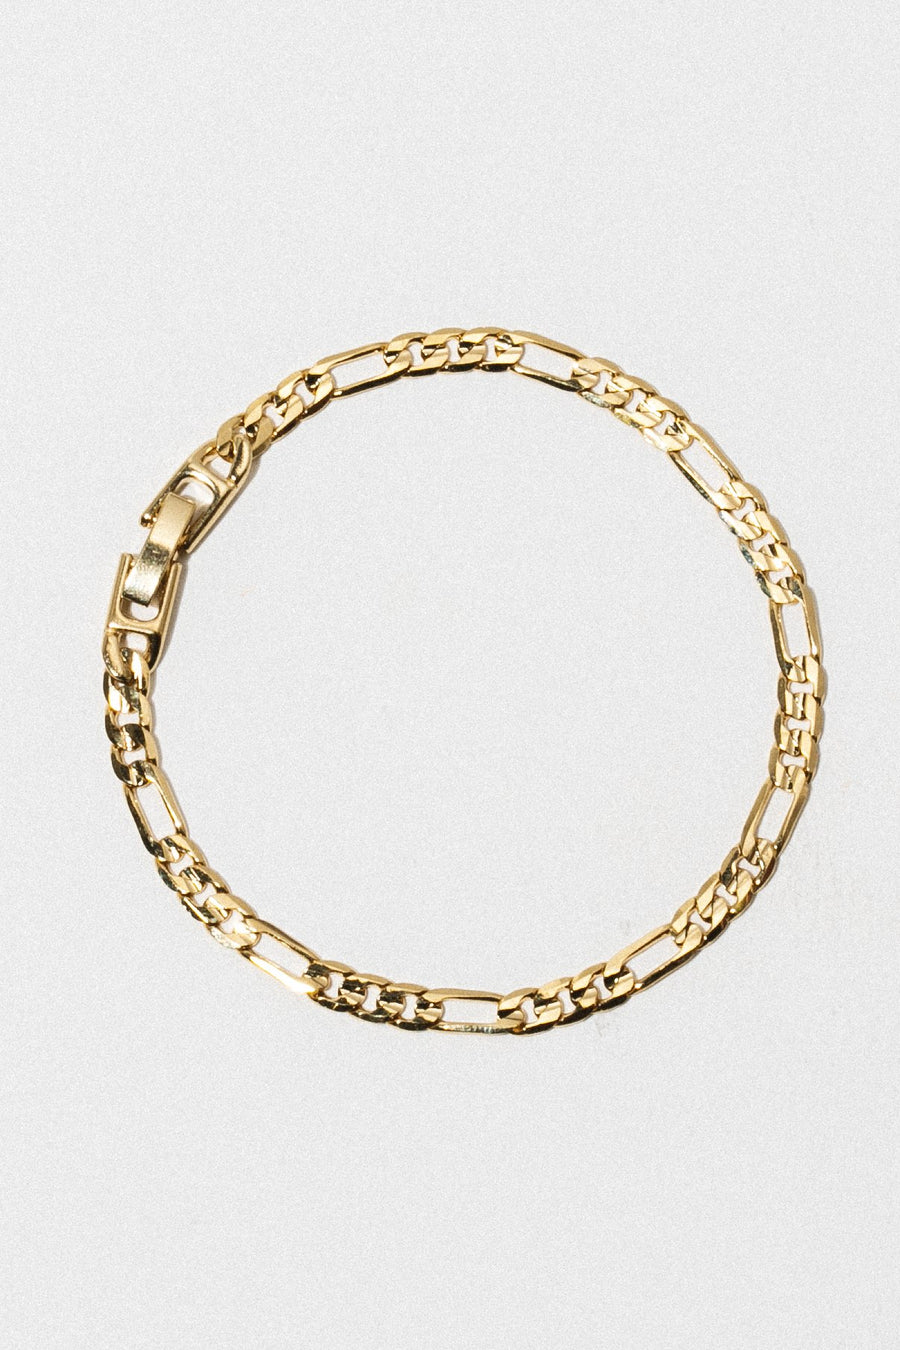 Sparrow Jewelry Gold Figaro Chain Bracelet